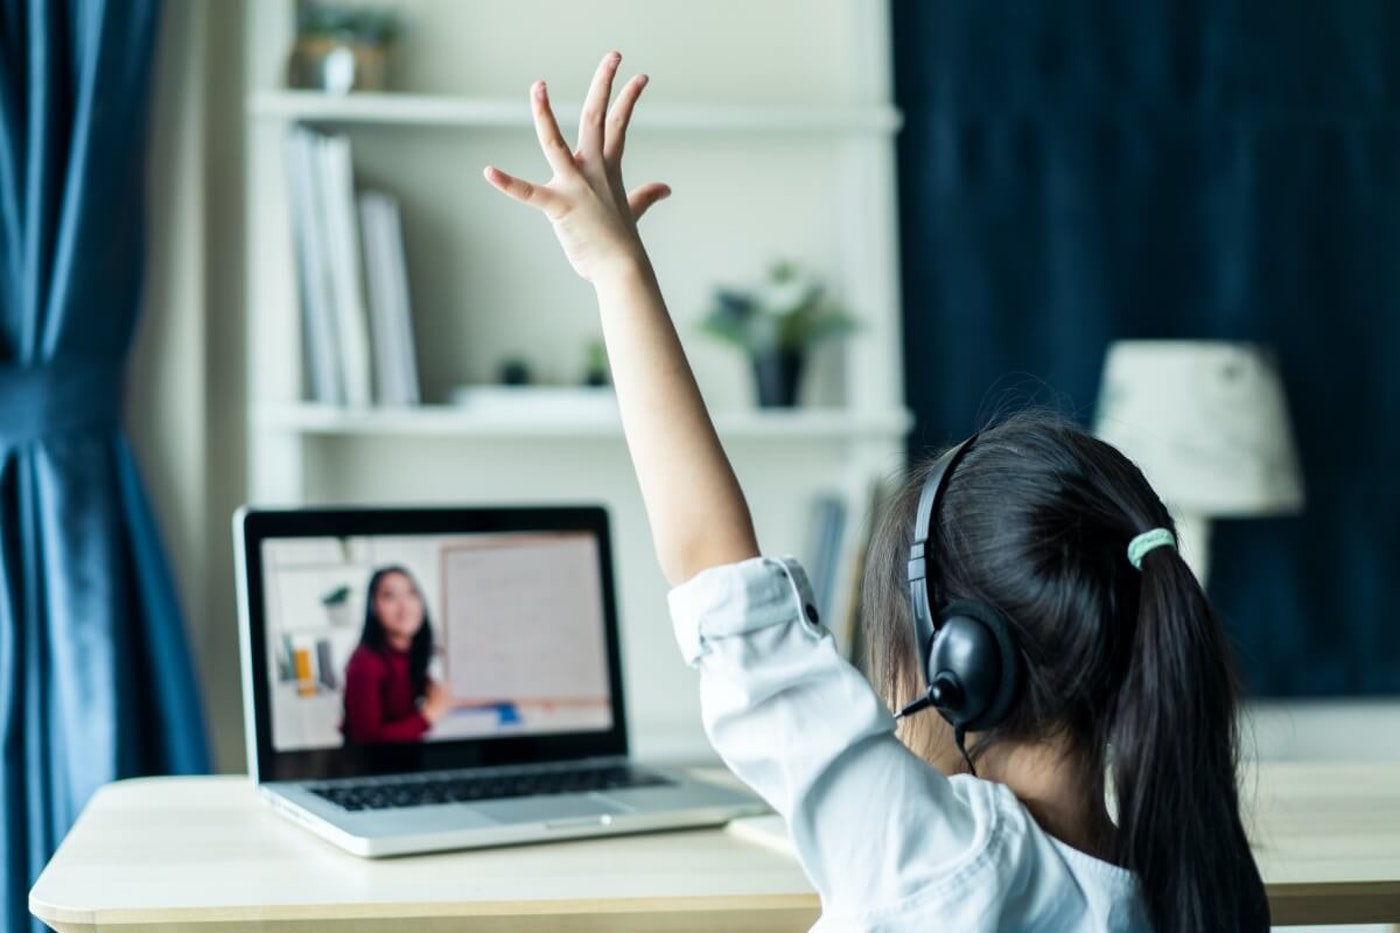 Detroit educators, students, and families will have an opportunity to join their counterparts from across the globe in a free virtual open house that explores online learning.